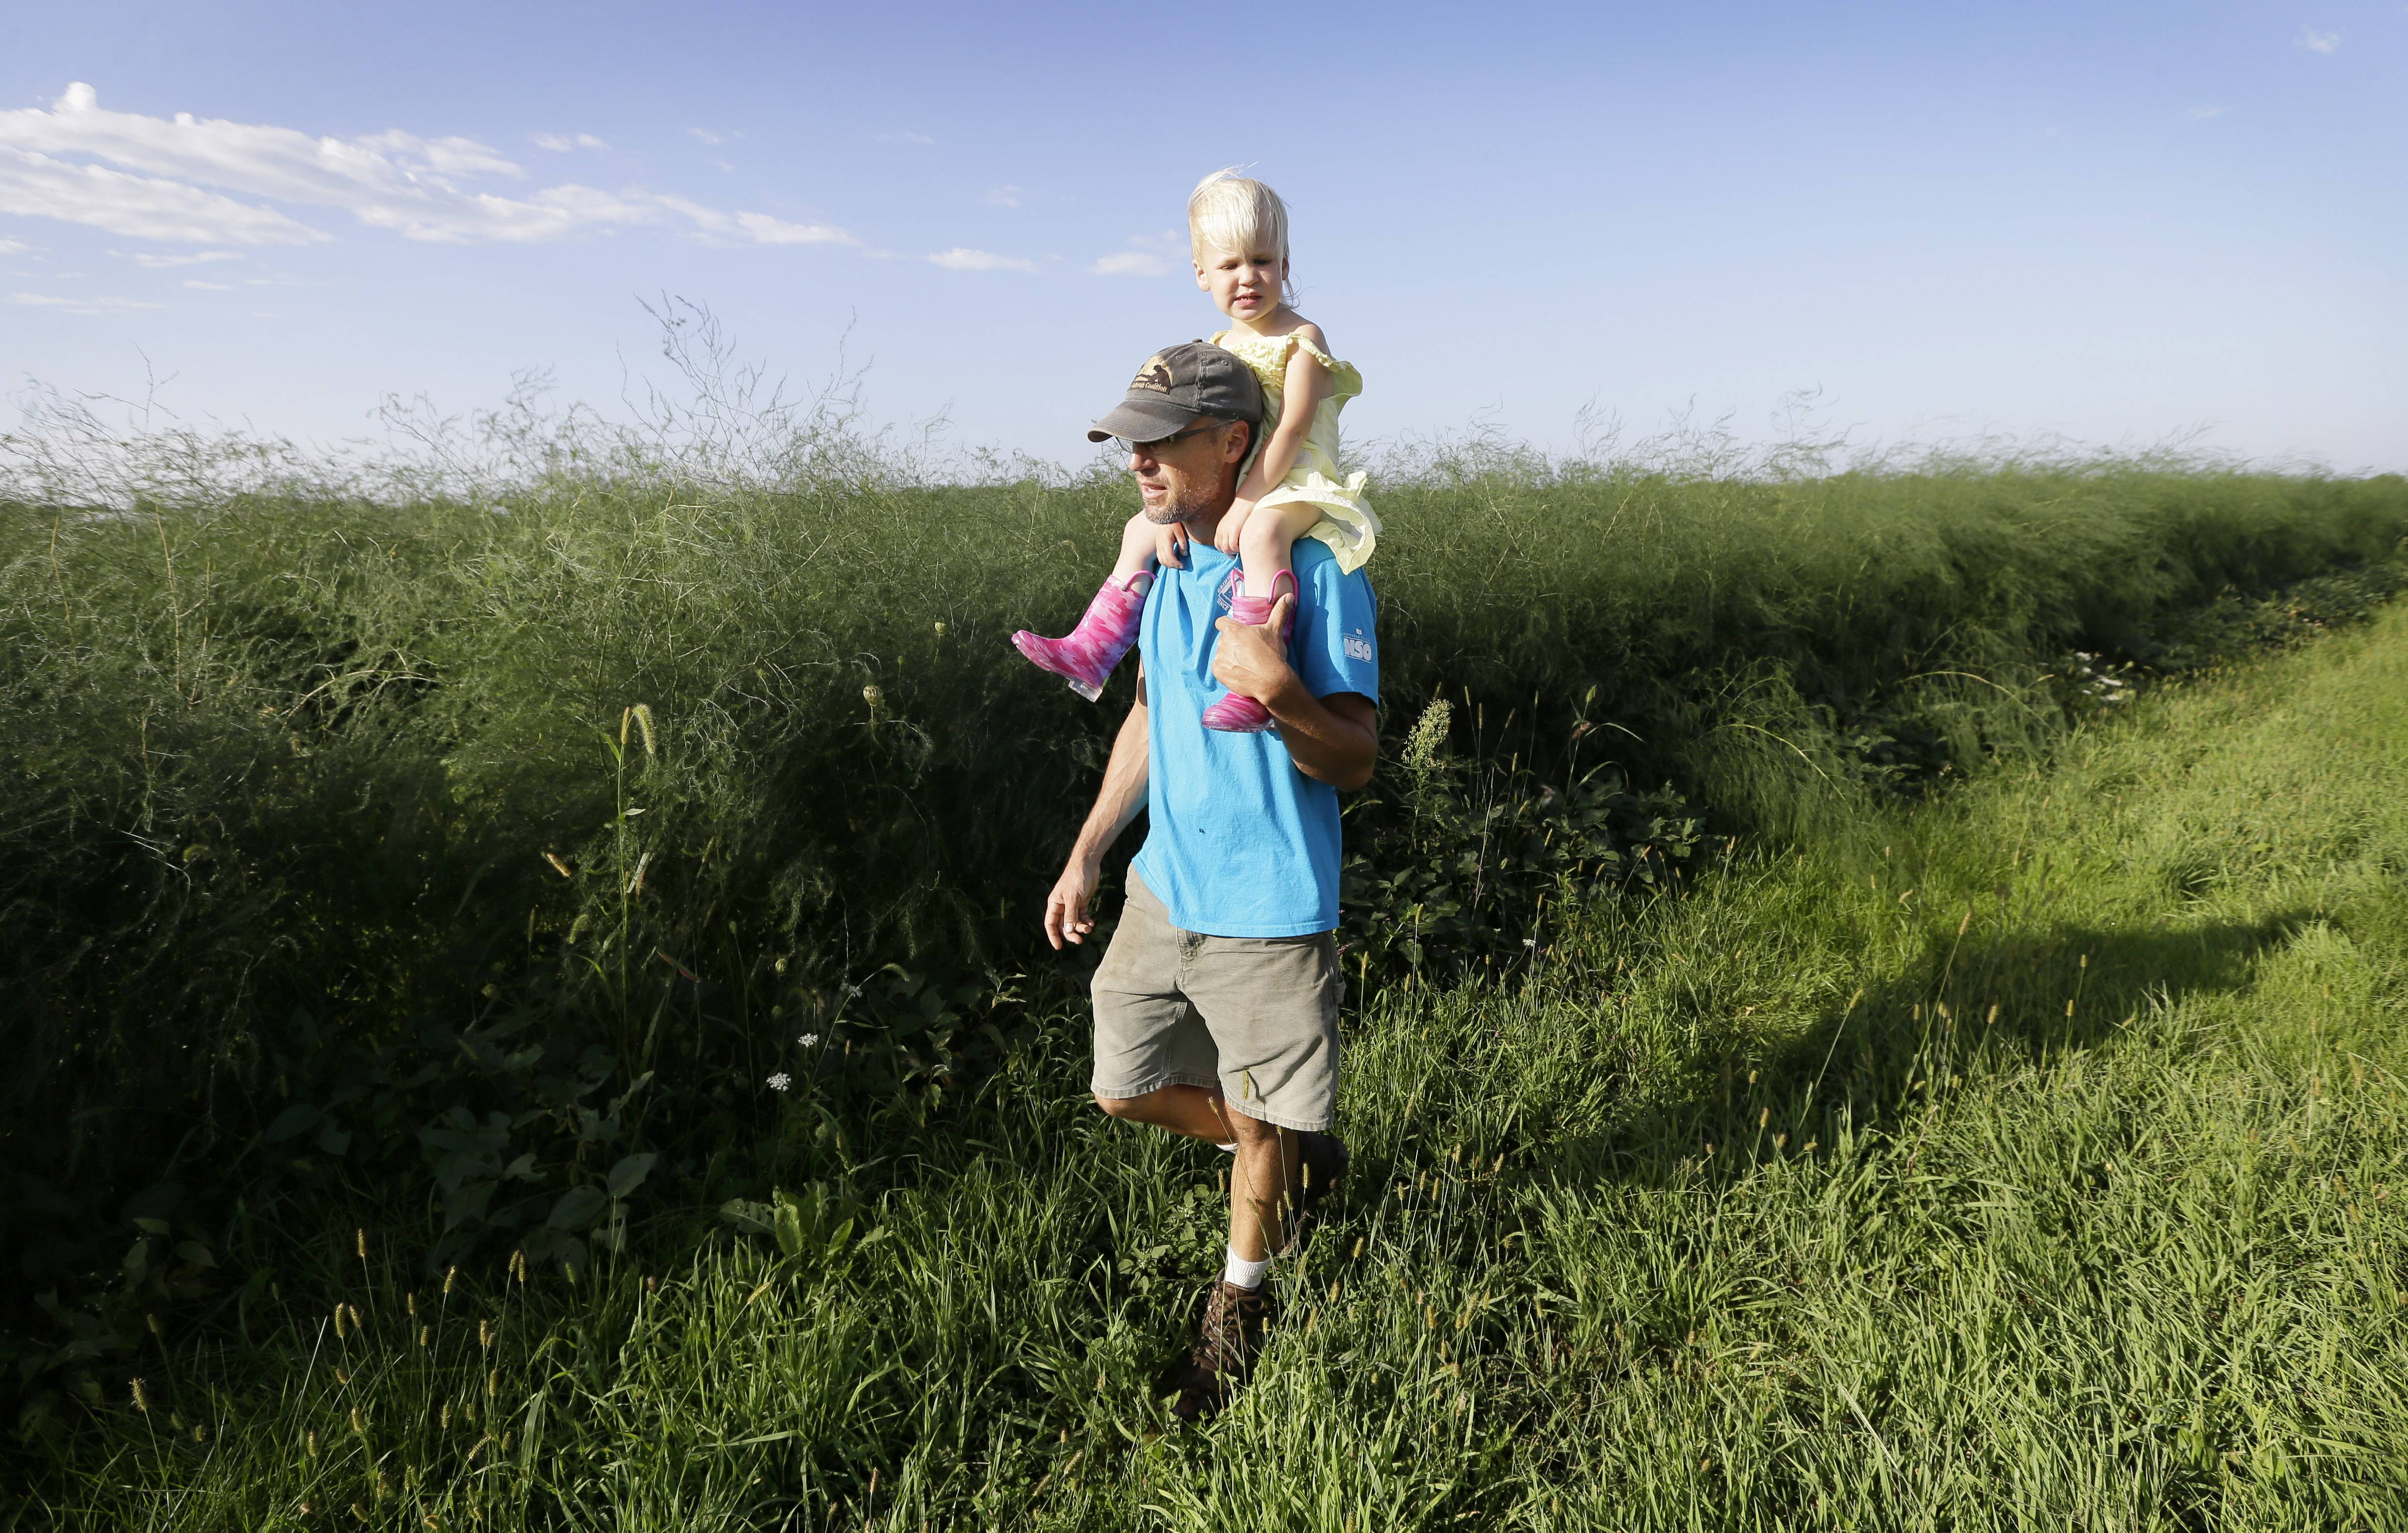 Andrew Dunham and his 2-year old daughter Leonora walk near asparagus plants Thursday on his farm, in Grinnell, Iowa.